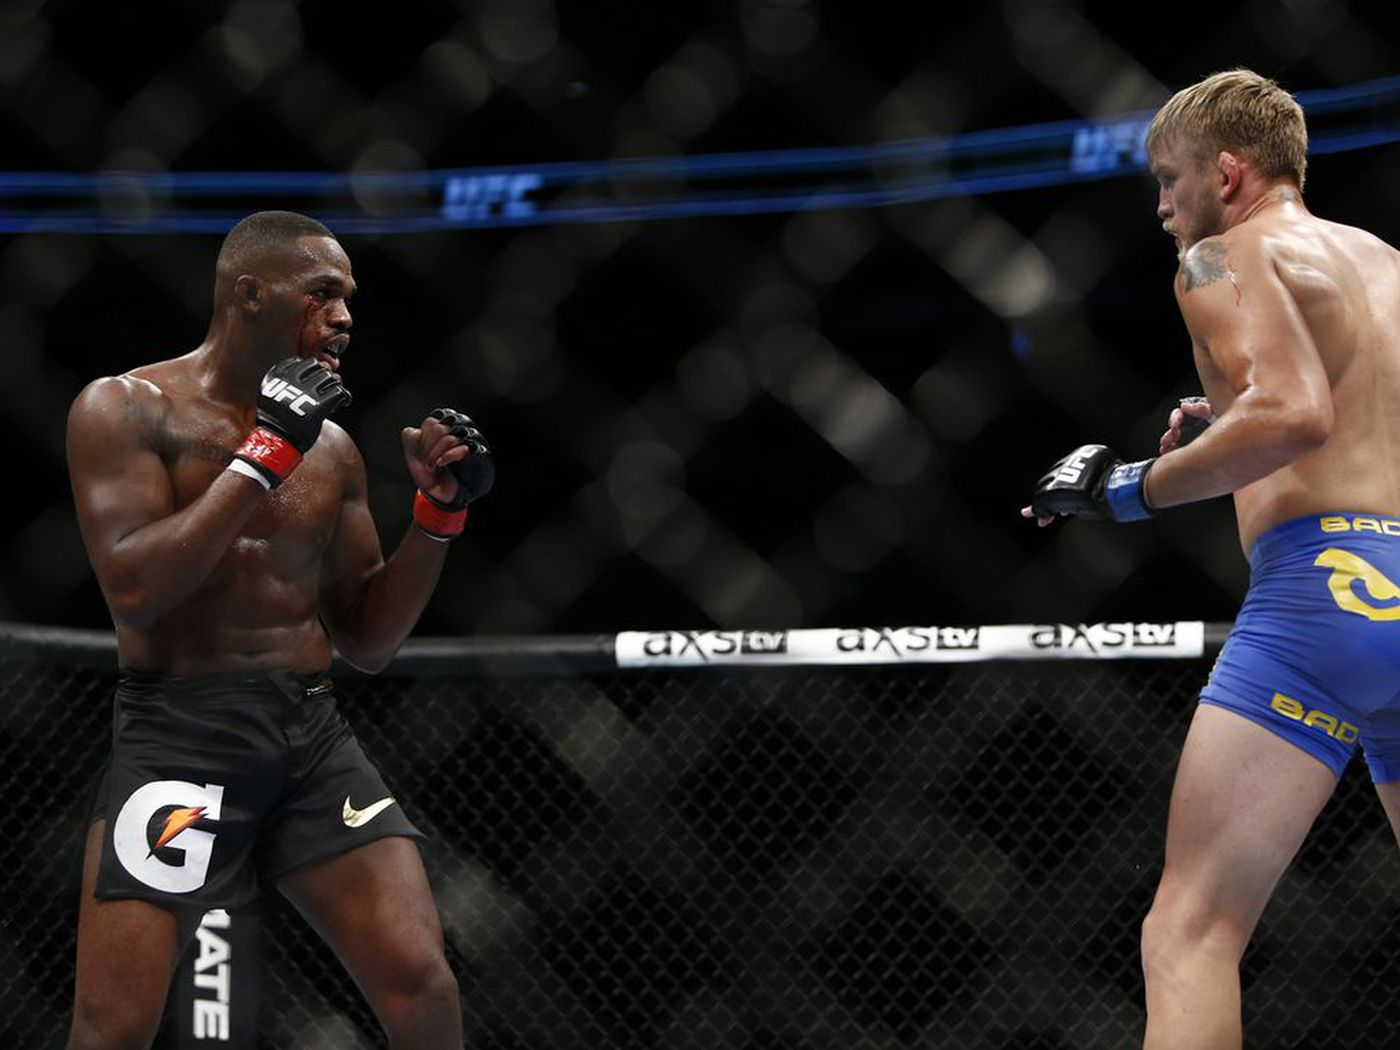 The UFC use the Avengers: Endgame teaser to promote Jones vs Gustafsson 2 and it's spine chilling! -